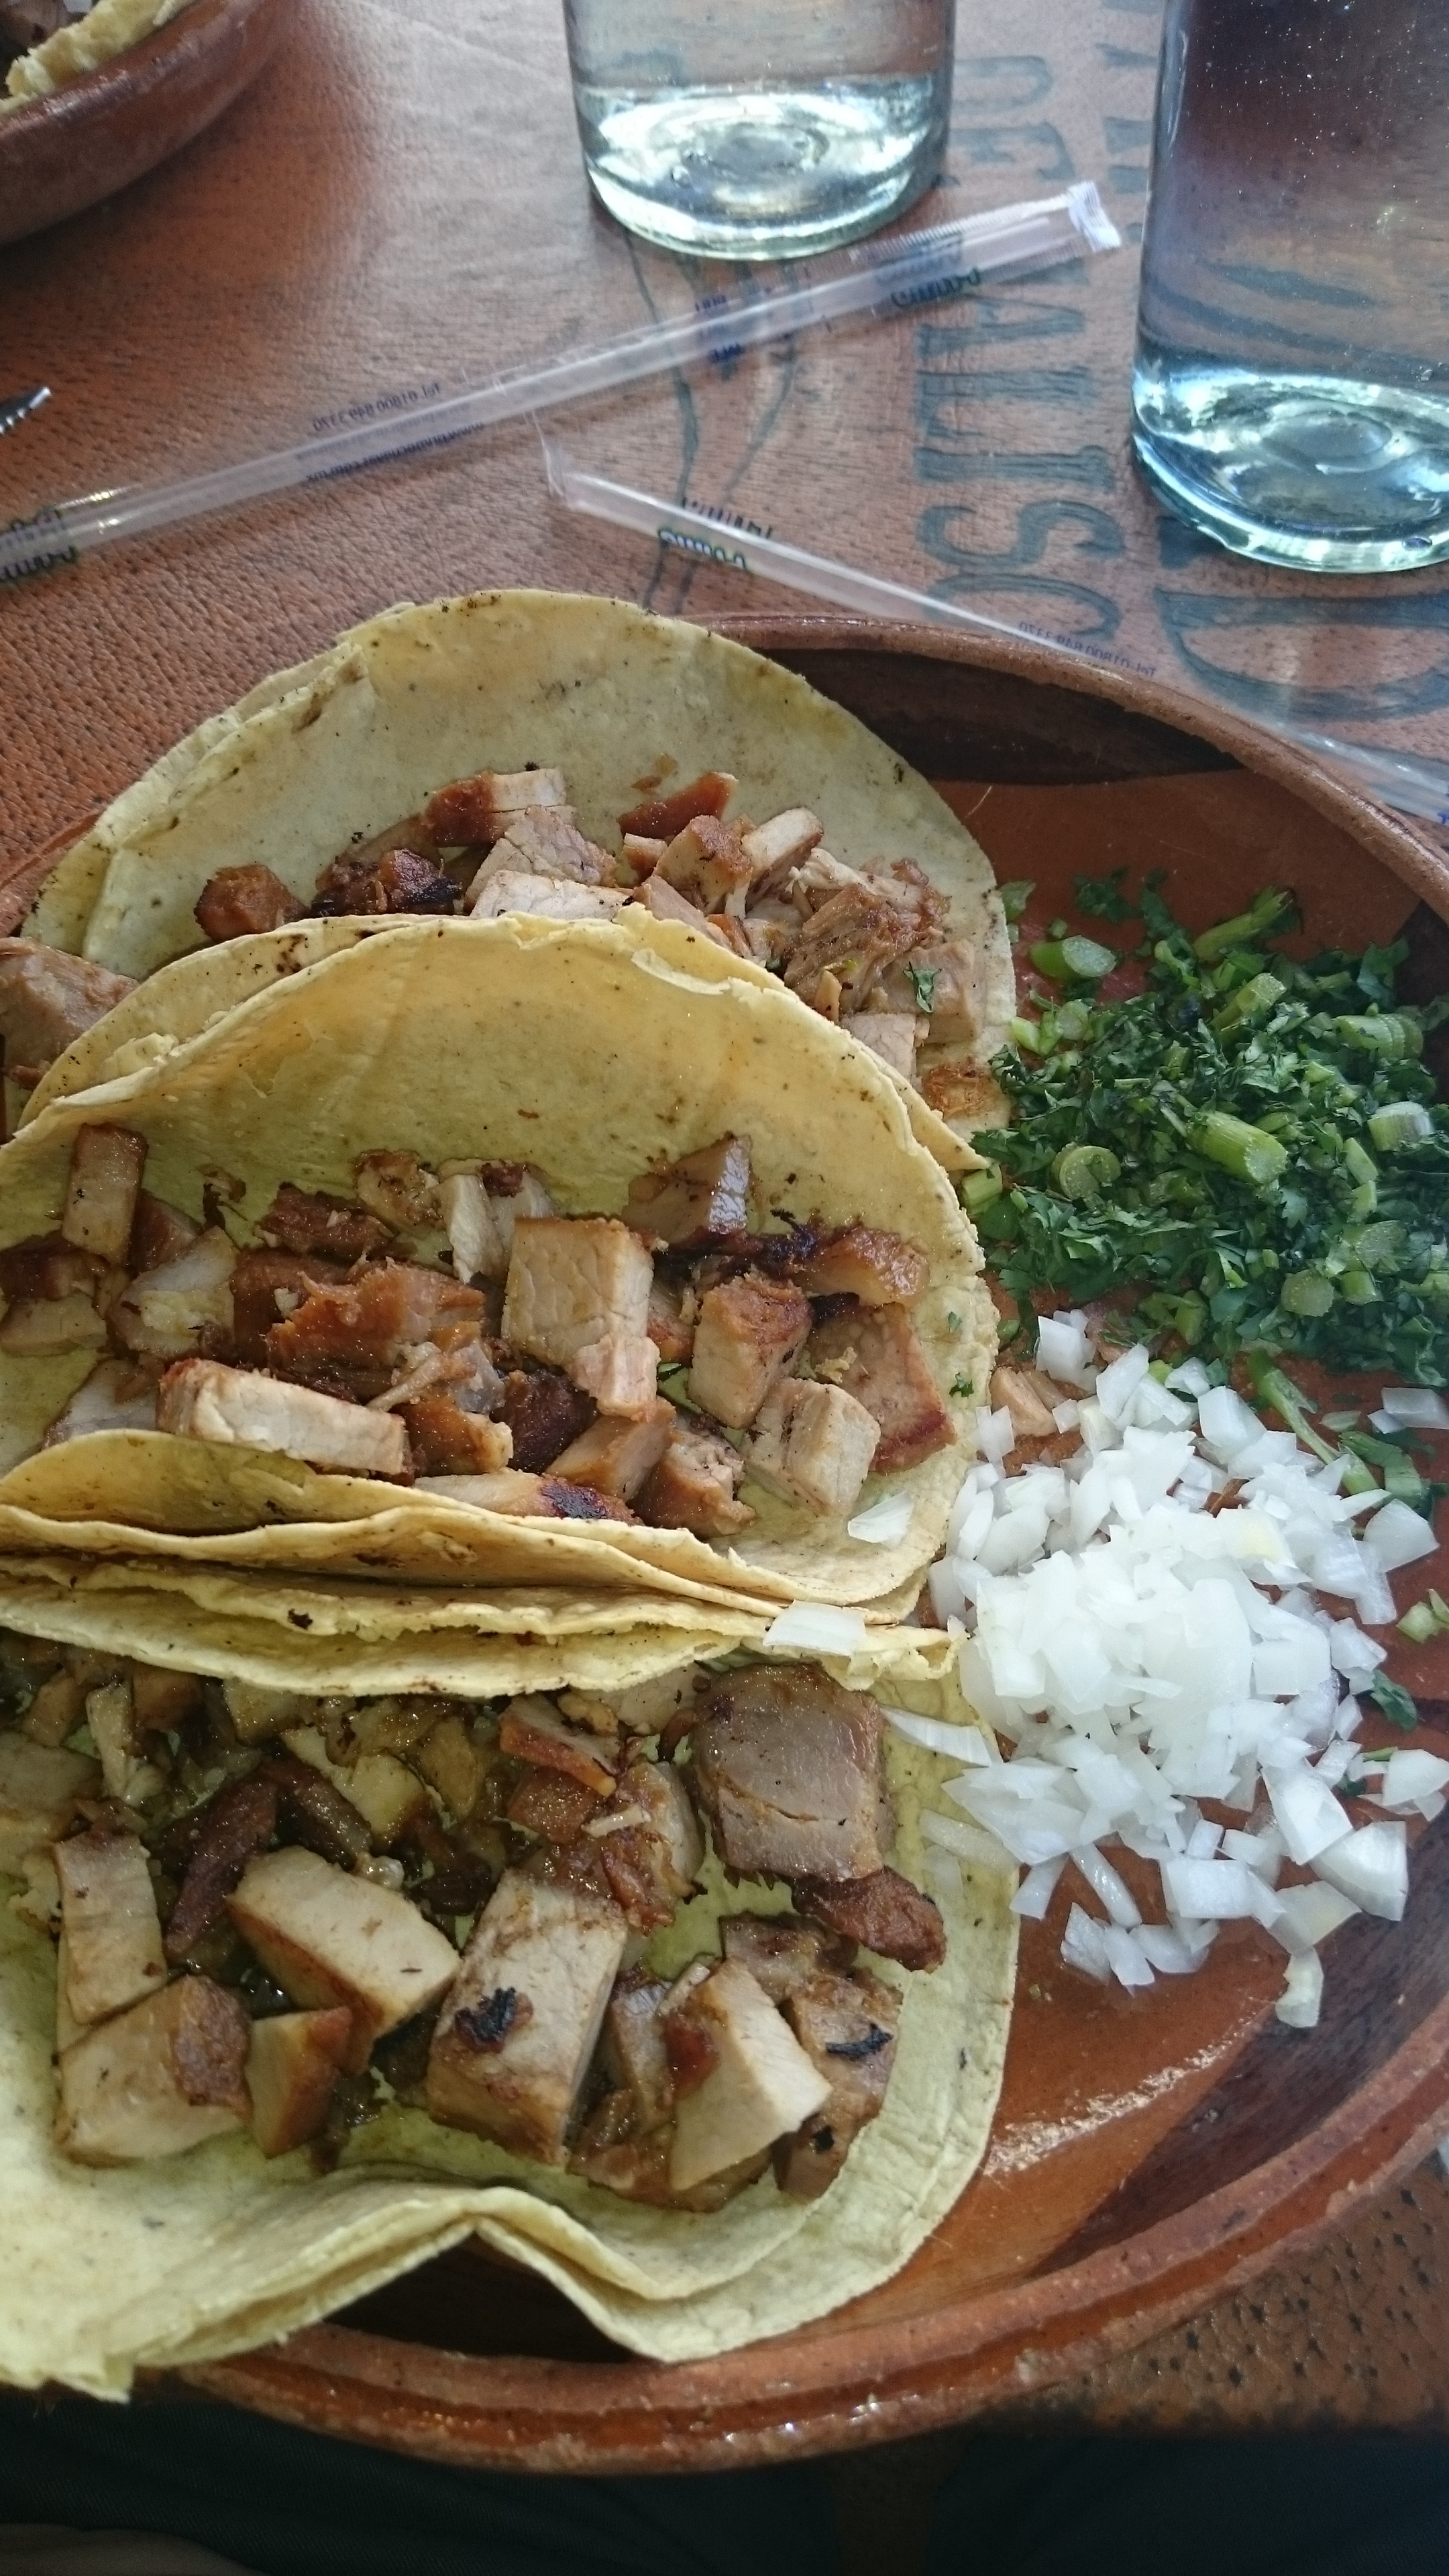 Can't go to Mexico and not have tacos!